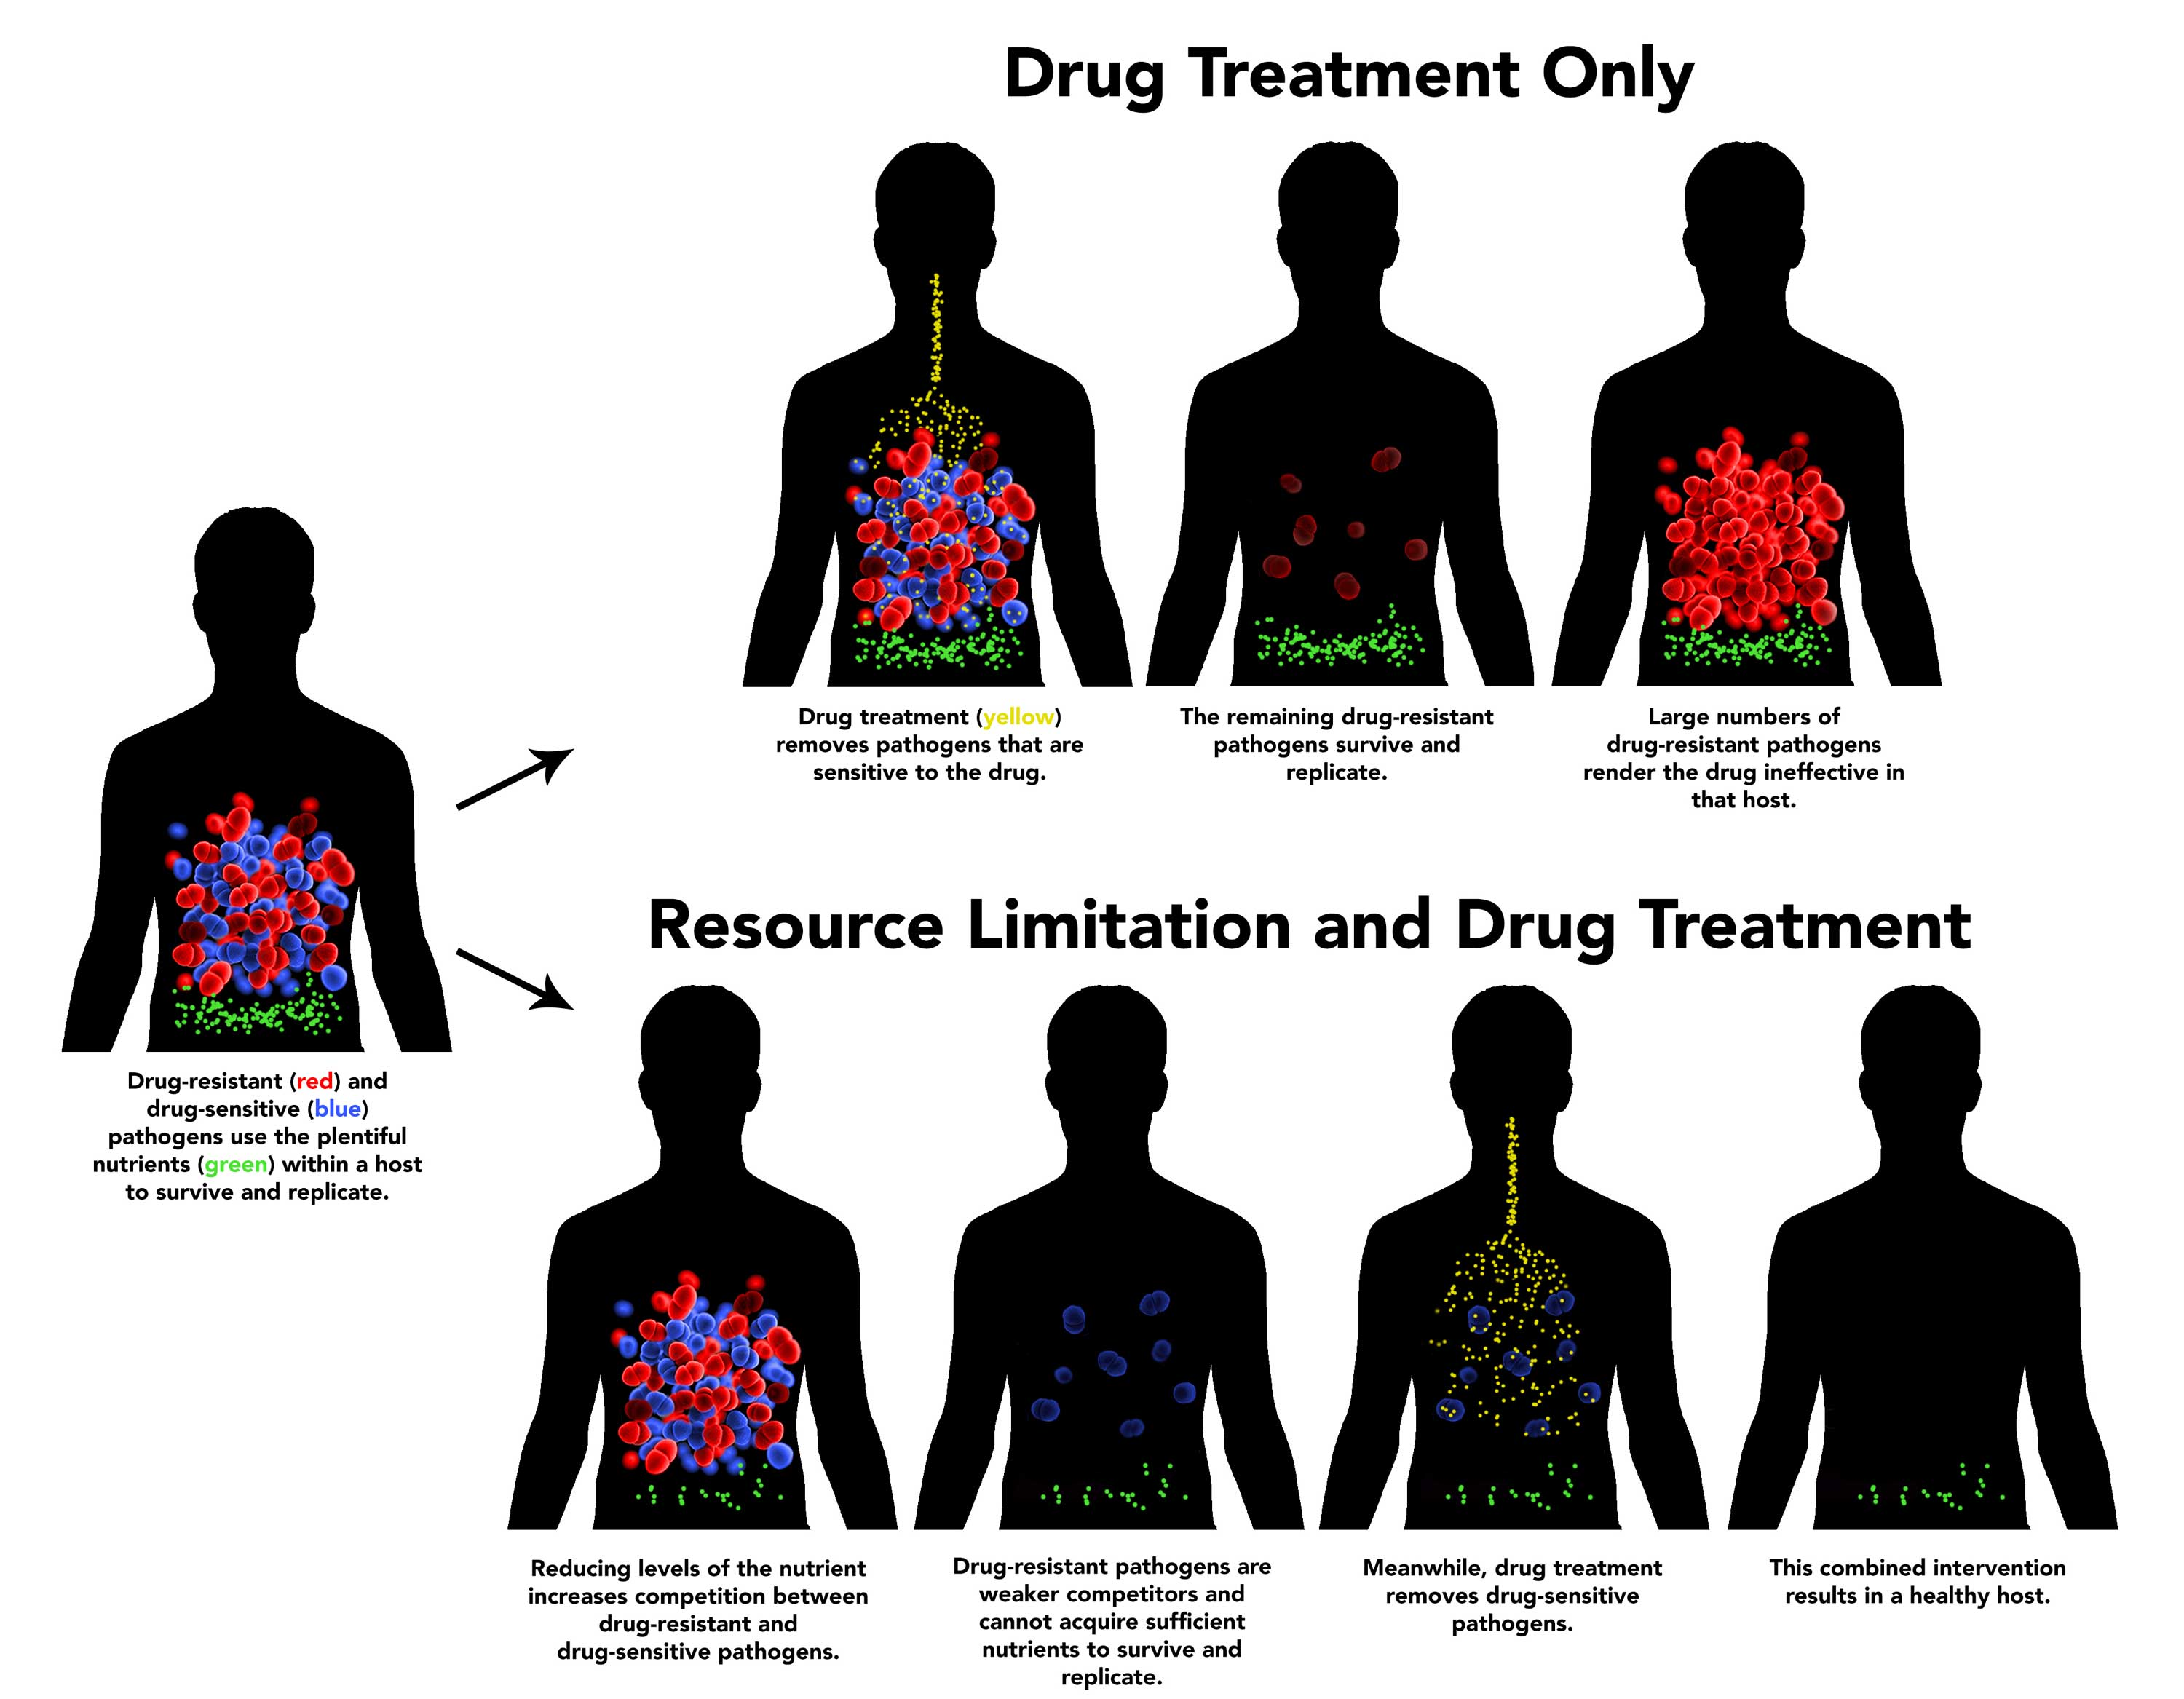 Infographic showing differences between drug treatment only and resource limitation and drug treatment. Image credit: Nathan Follmer, Penn State